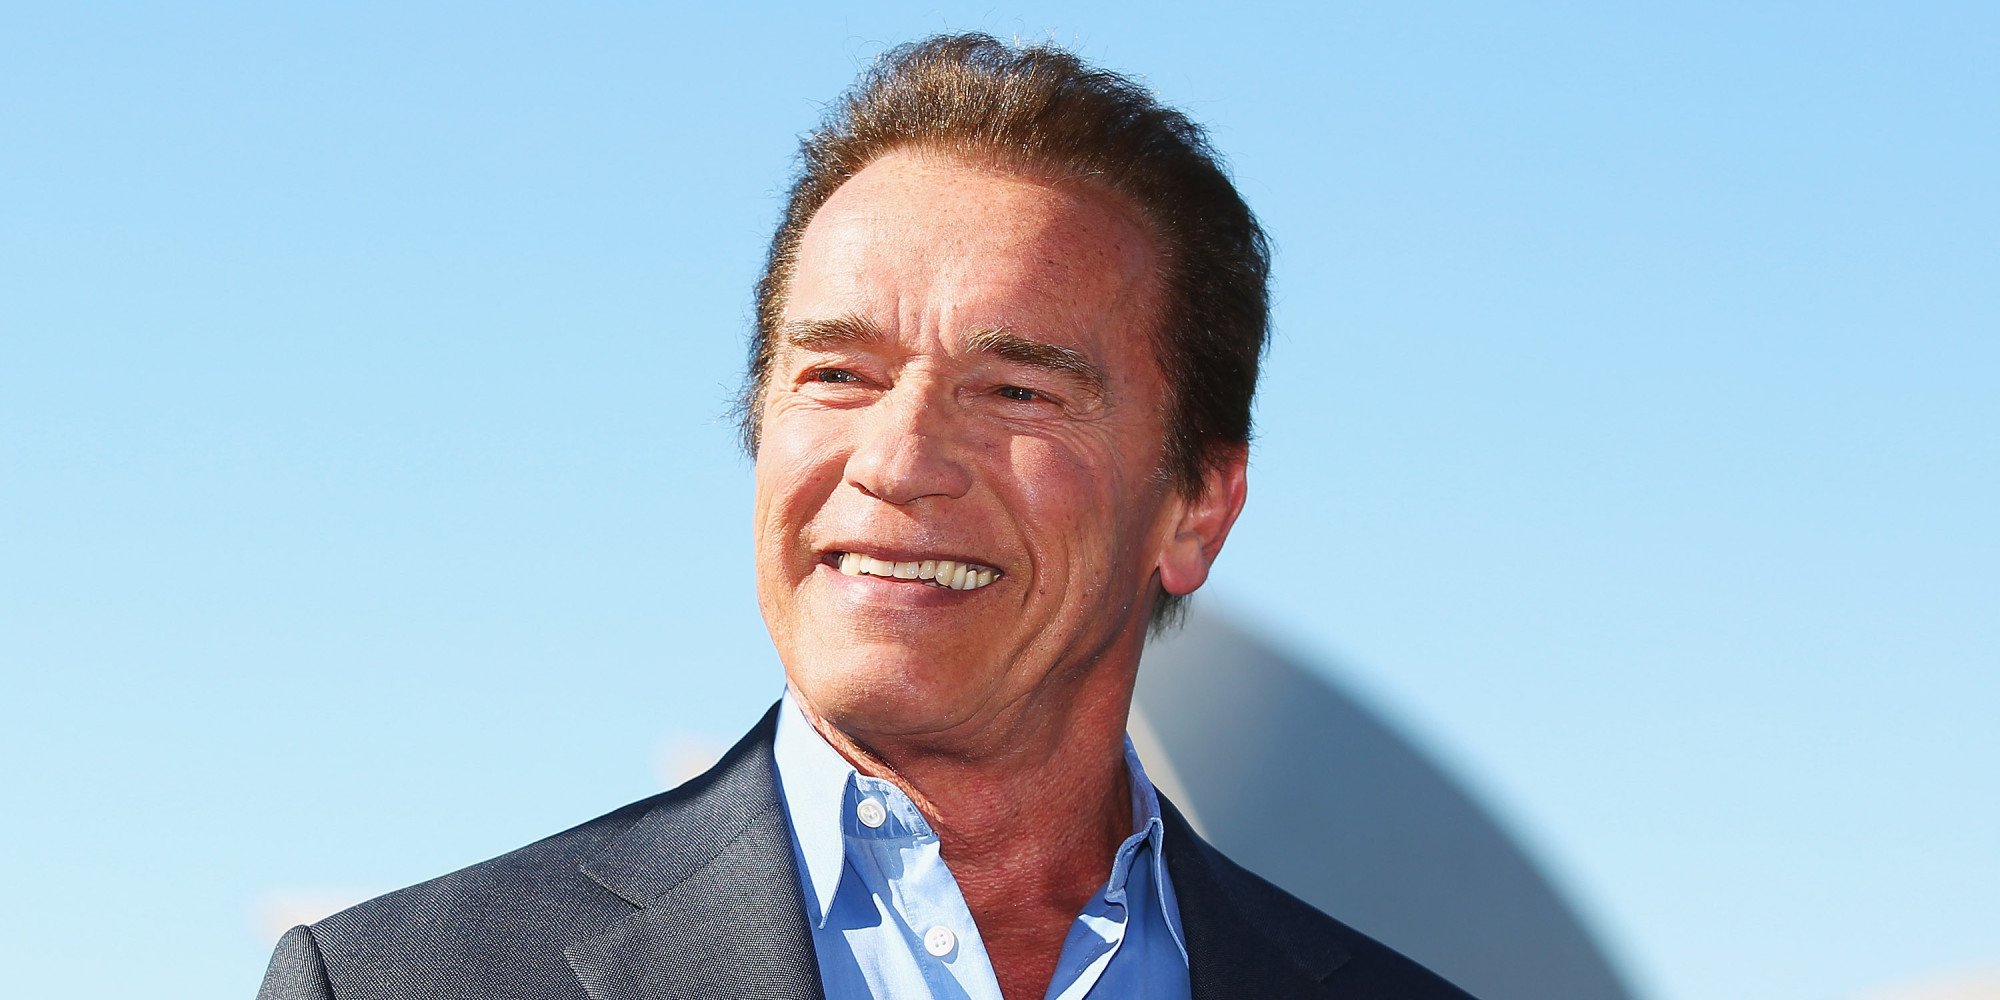 arnold schwarzenegger - photo #24